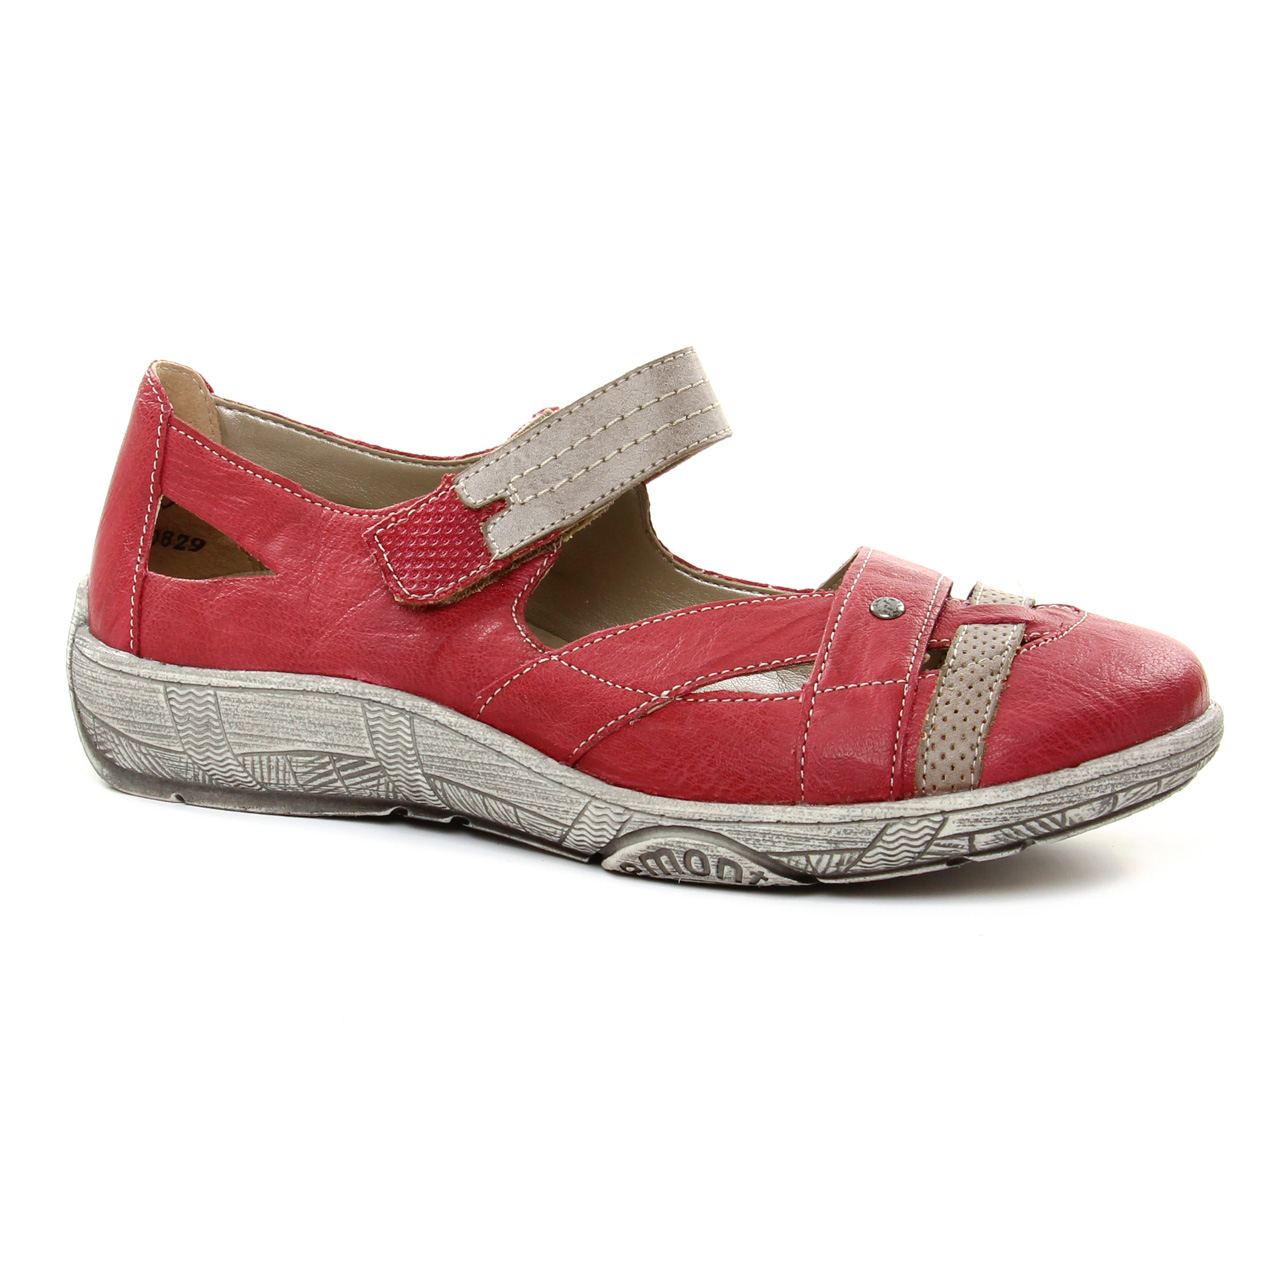 chaussure femme dorking,chaussure emo pas cher,chaussures